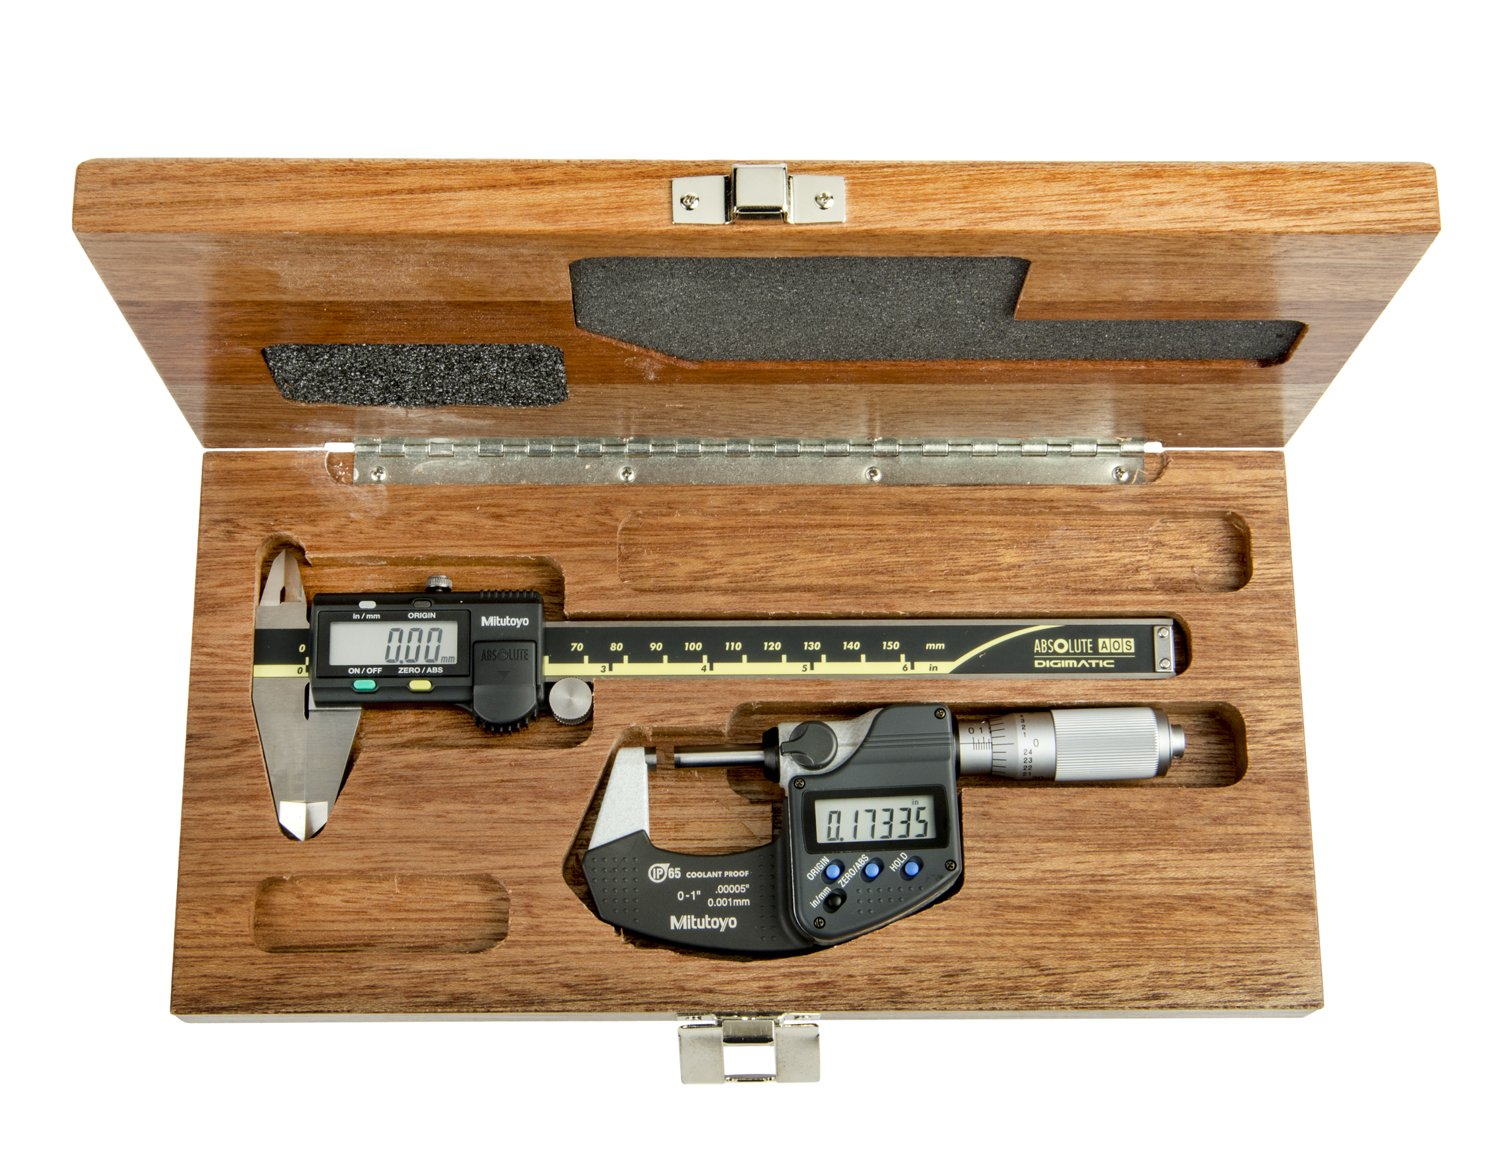 FREE E-BOOK IN A GIFT HOME HINTS AND TIMELESS TIPS 303-1022 Caliper Attachment For 4 6 8 Fits Accessory Points Dial Digital